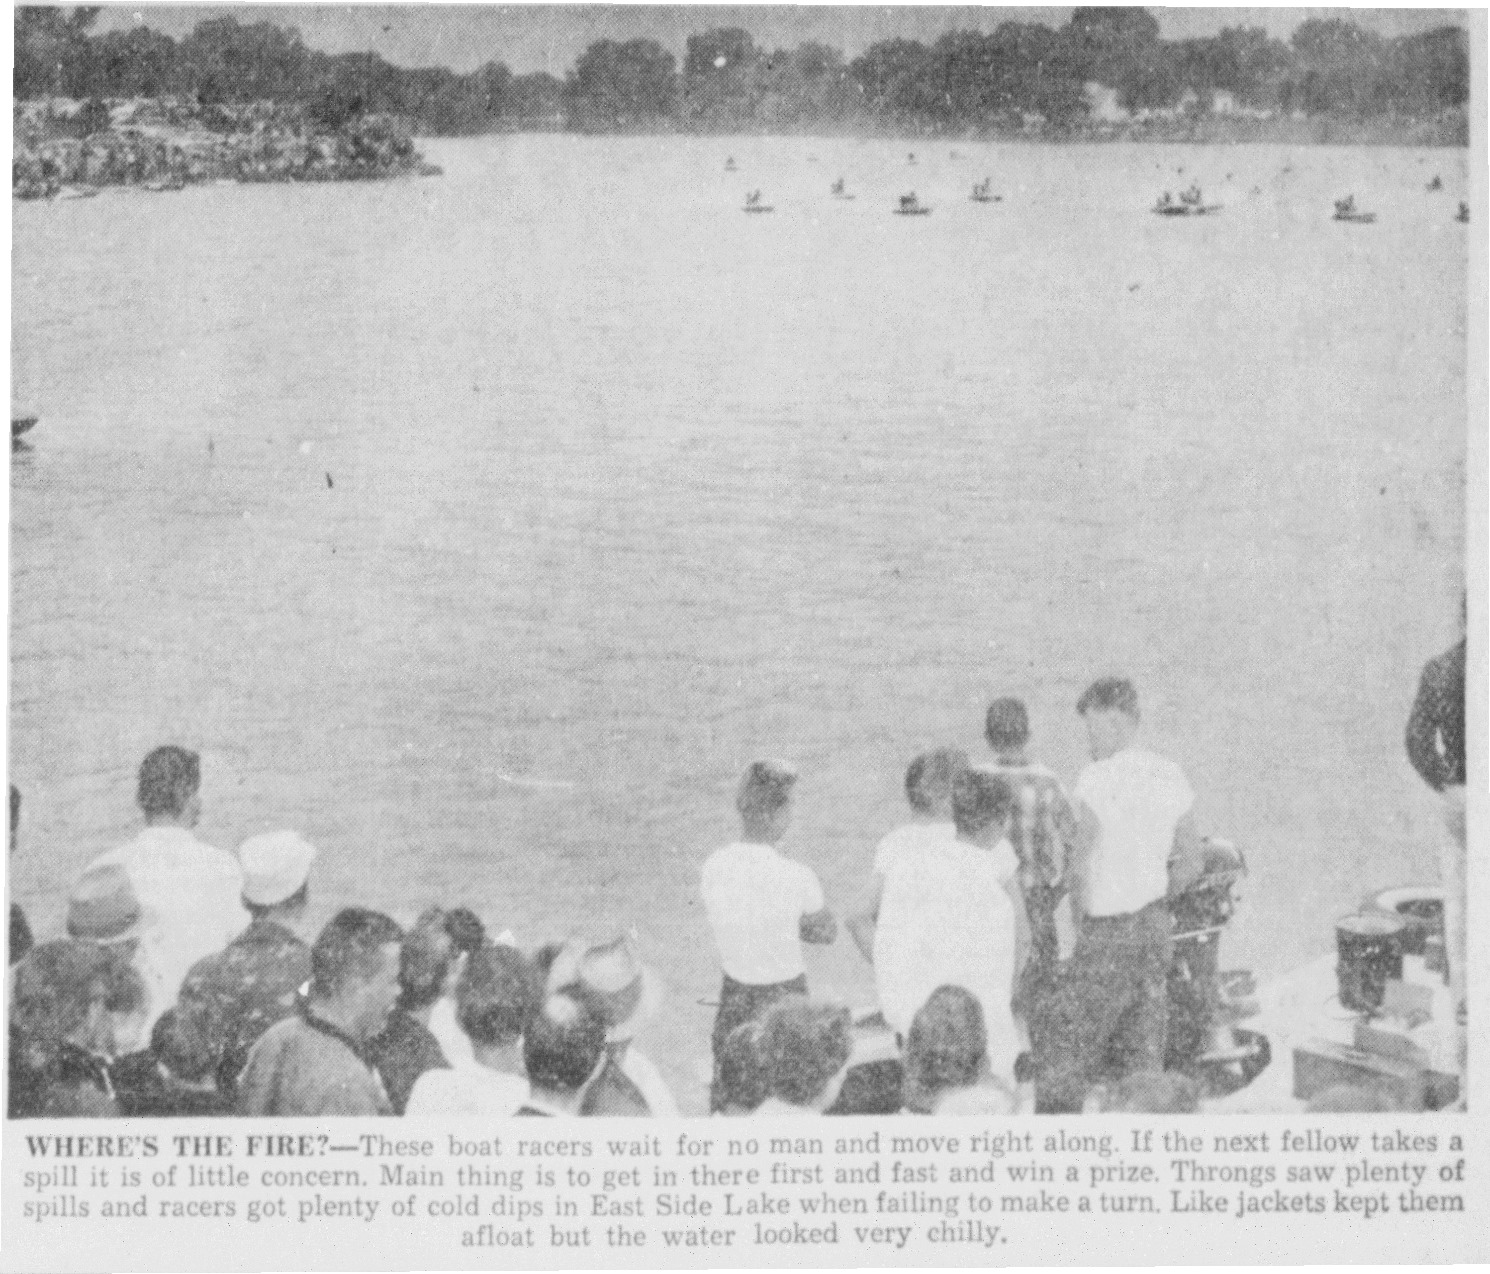 1956 4th of July Boat Racing on East Side Lake article - July 5th